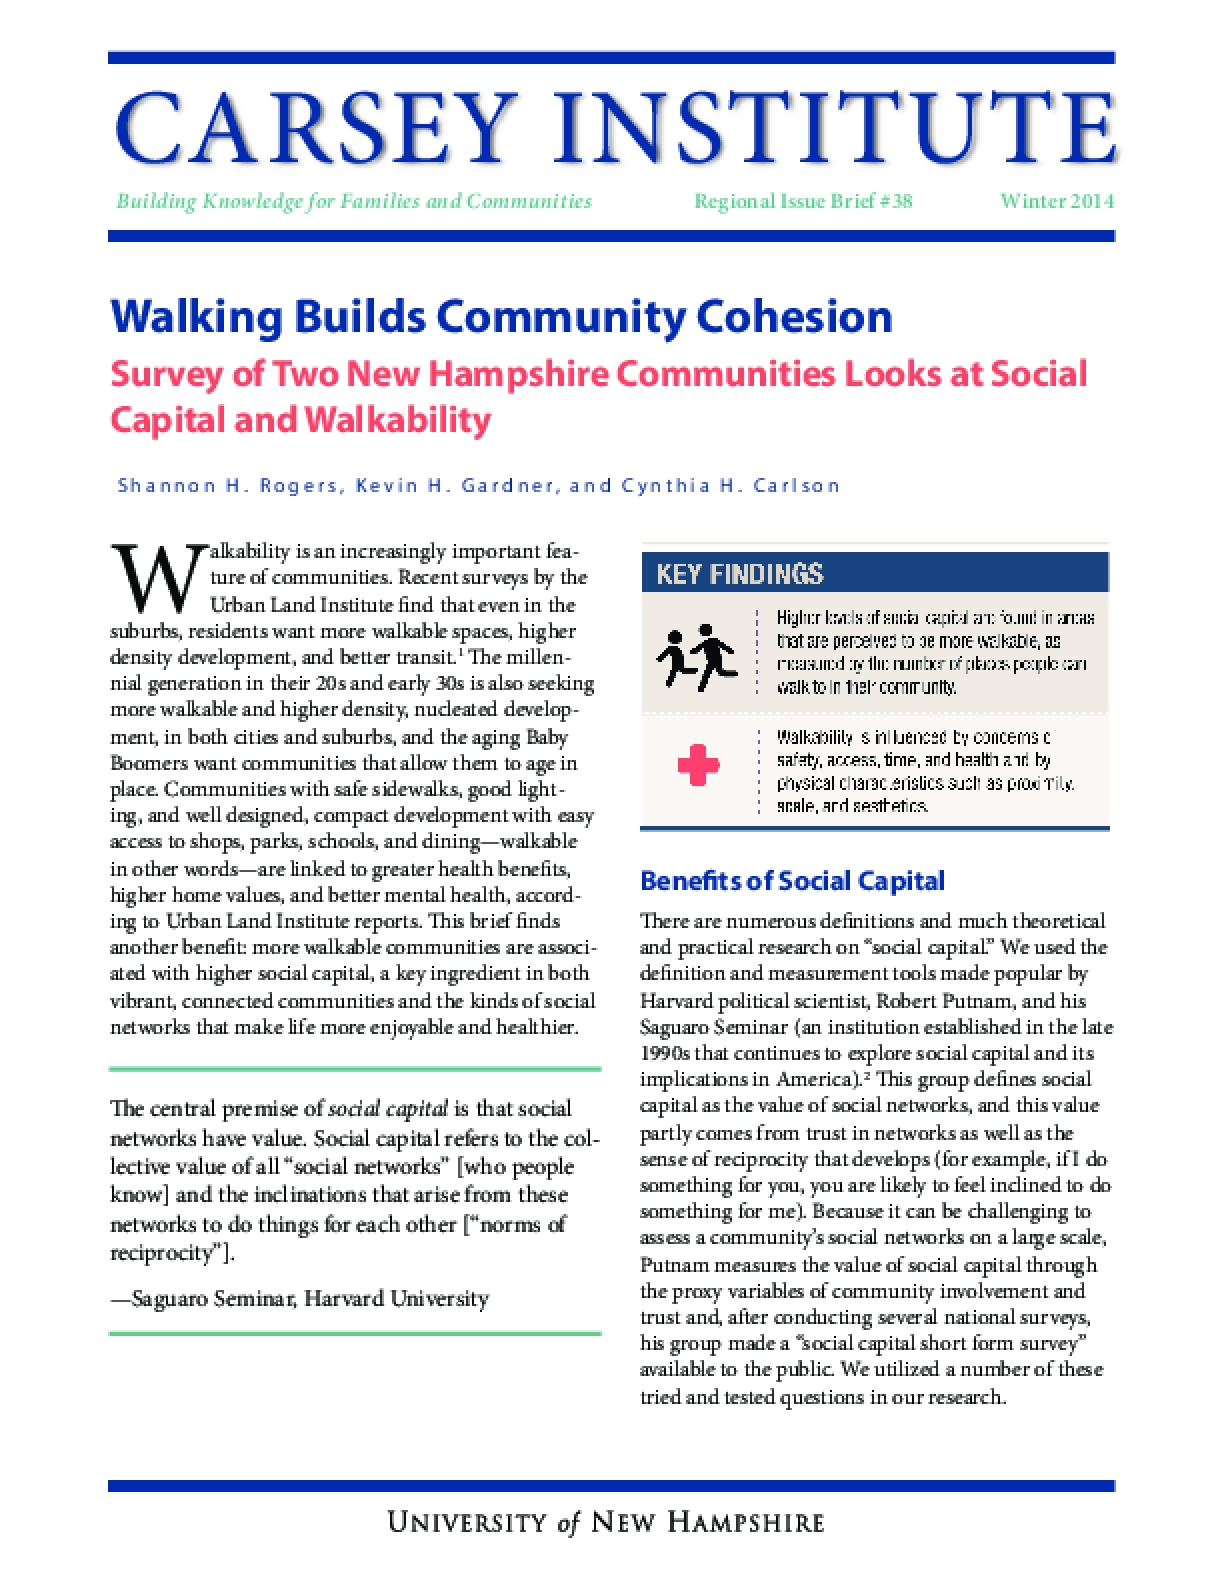 Walking Builds Community Cohesion: Survey of Two New Hampshire Communities Looks at Social Capital and Walkability